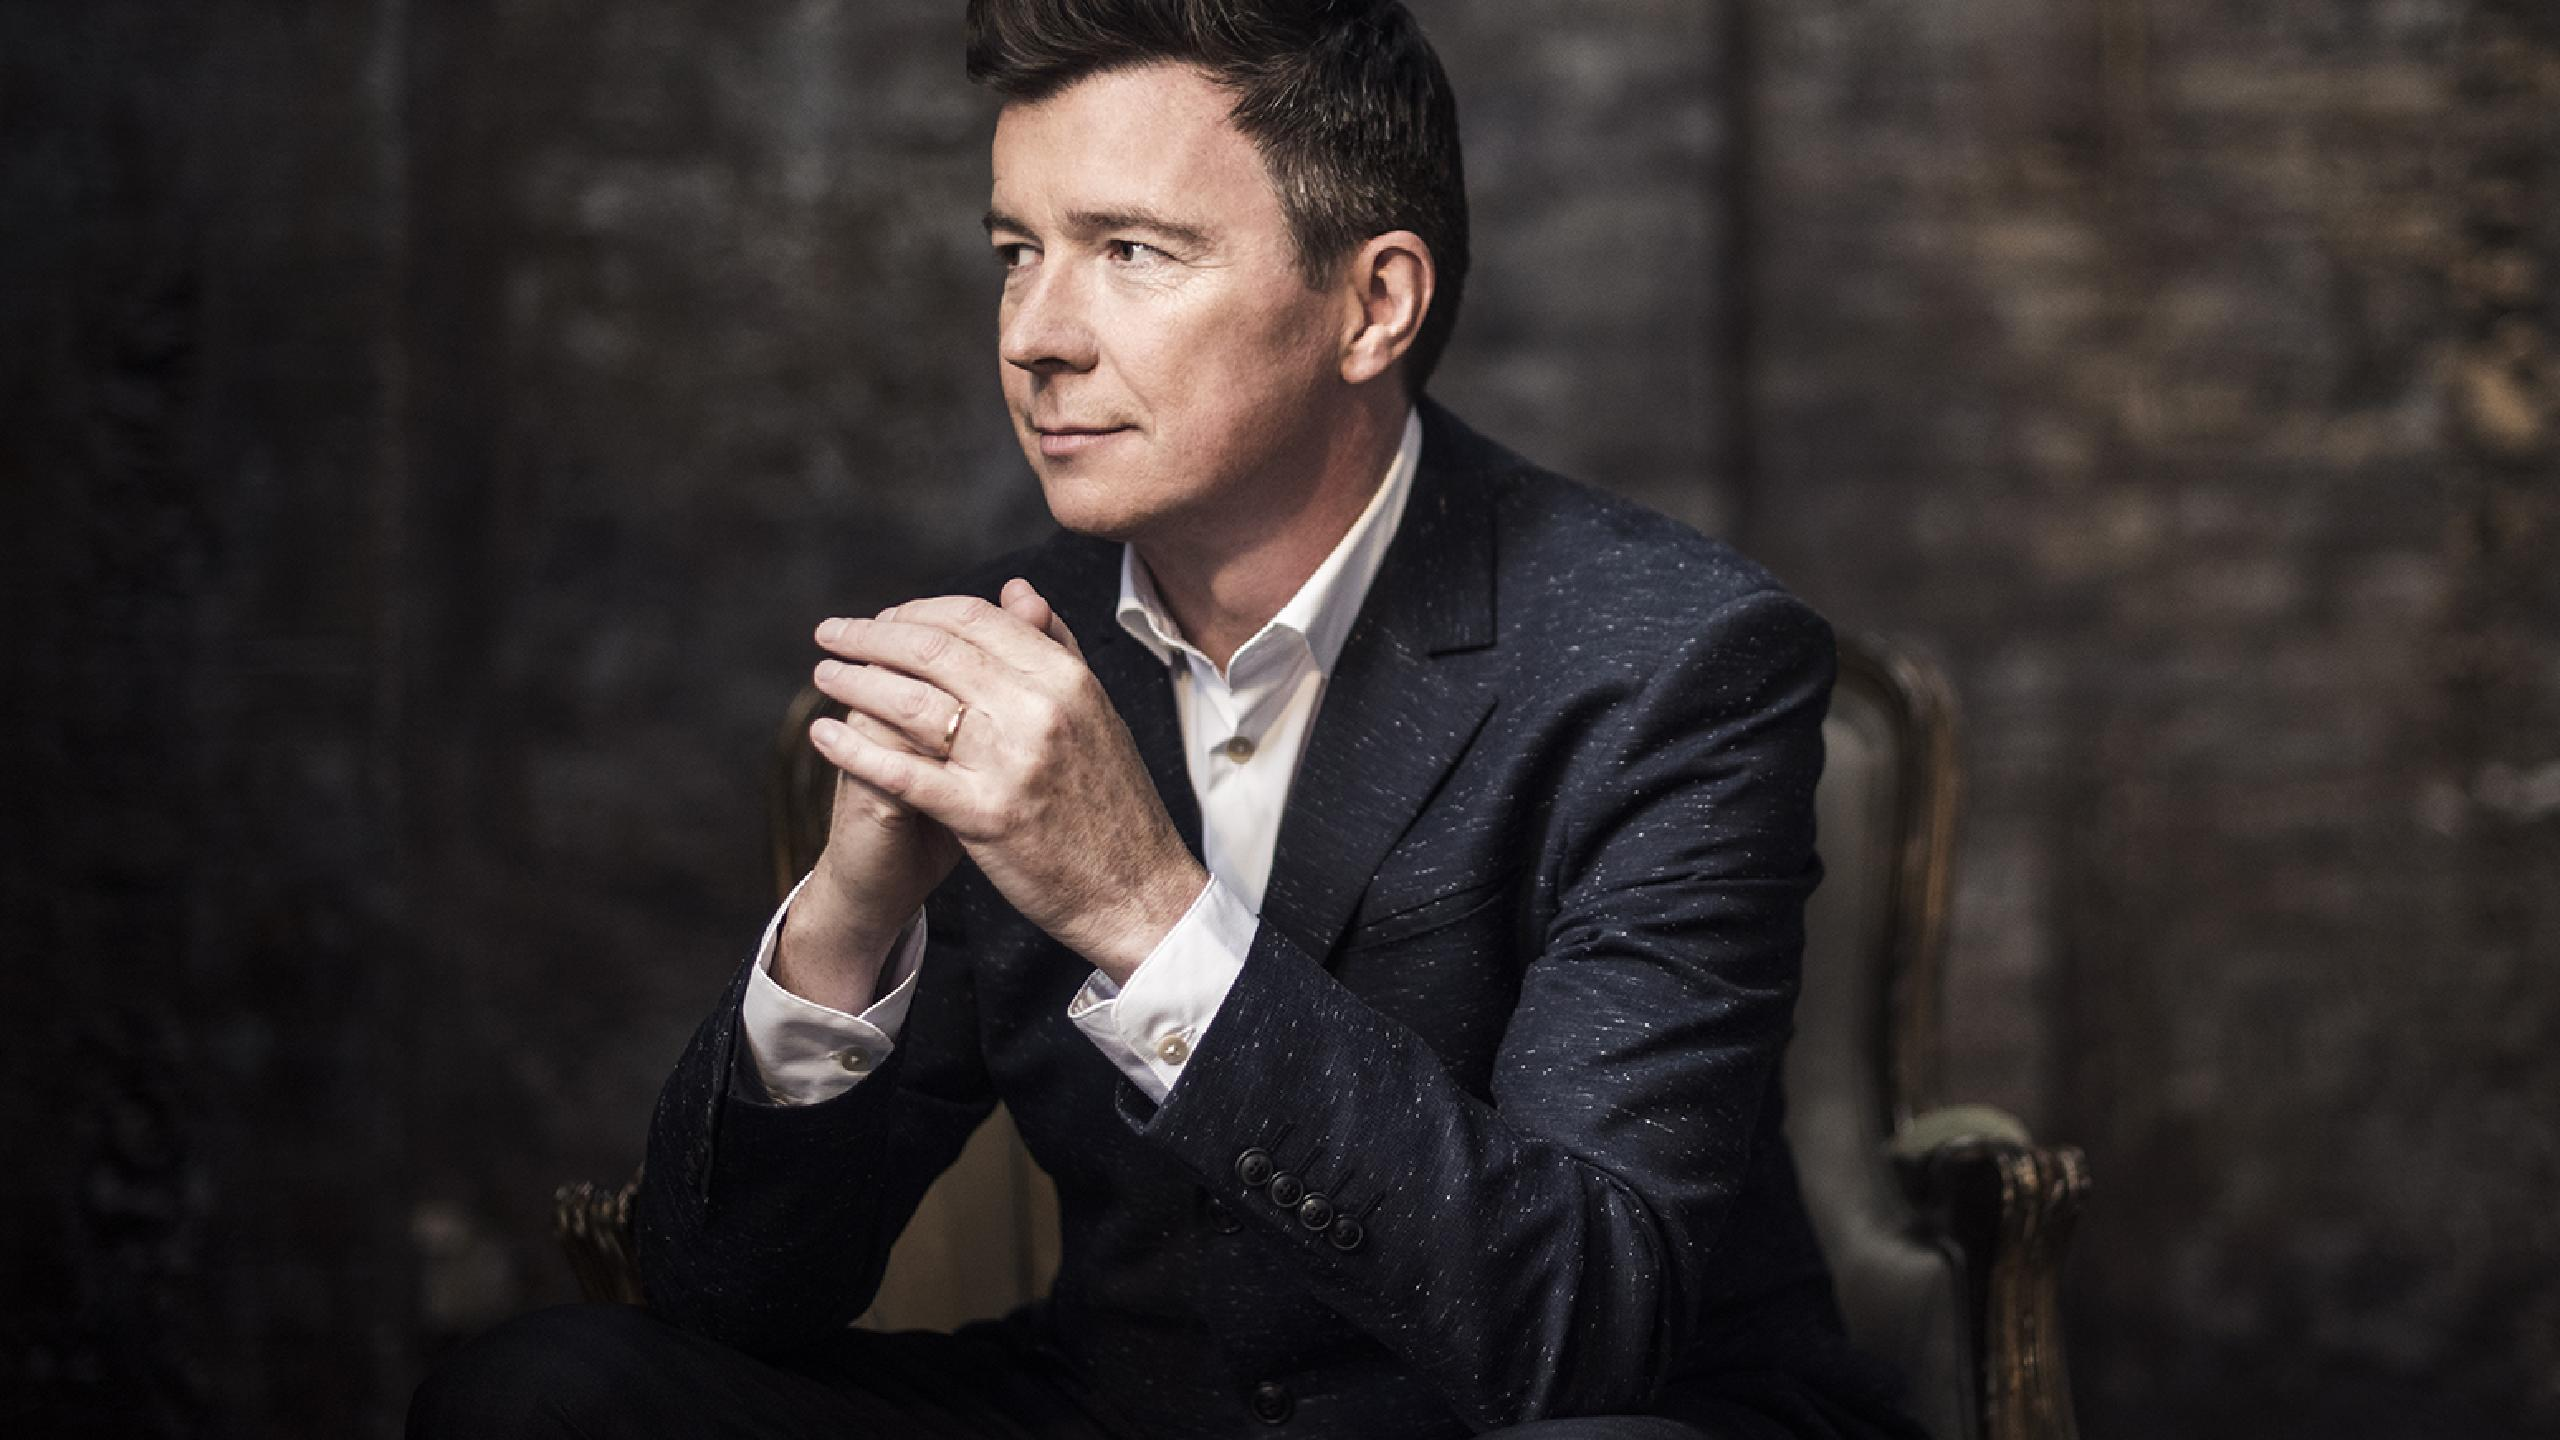 Rick Astley Tour 2020 Rick Astley tour dates 2019 2020. Rick Astley tickets and concerts